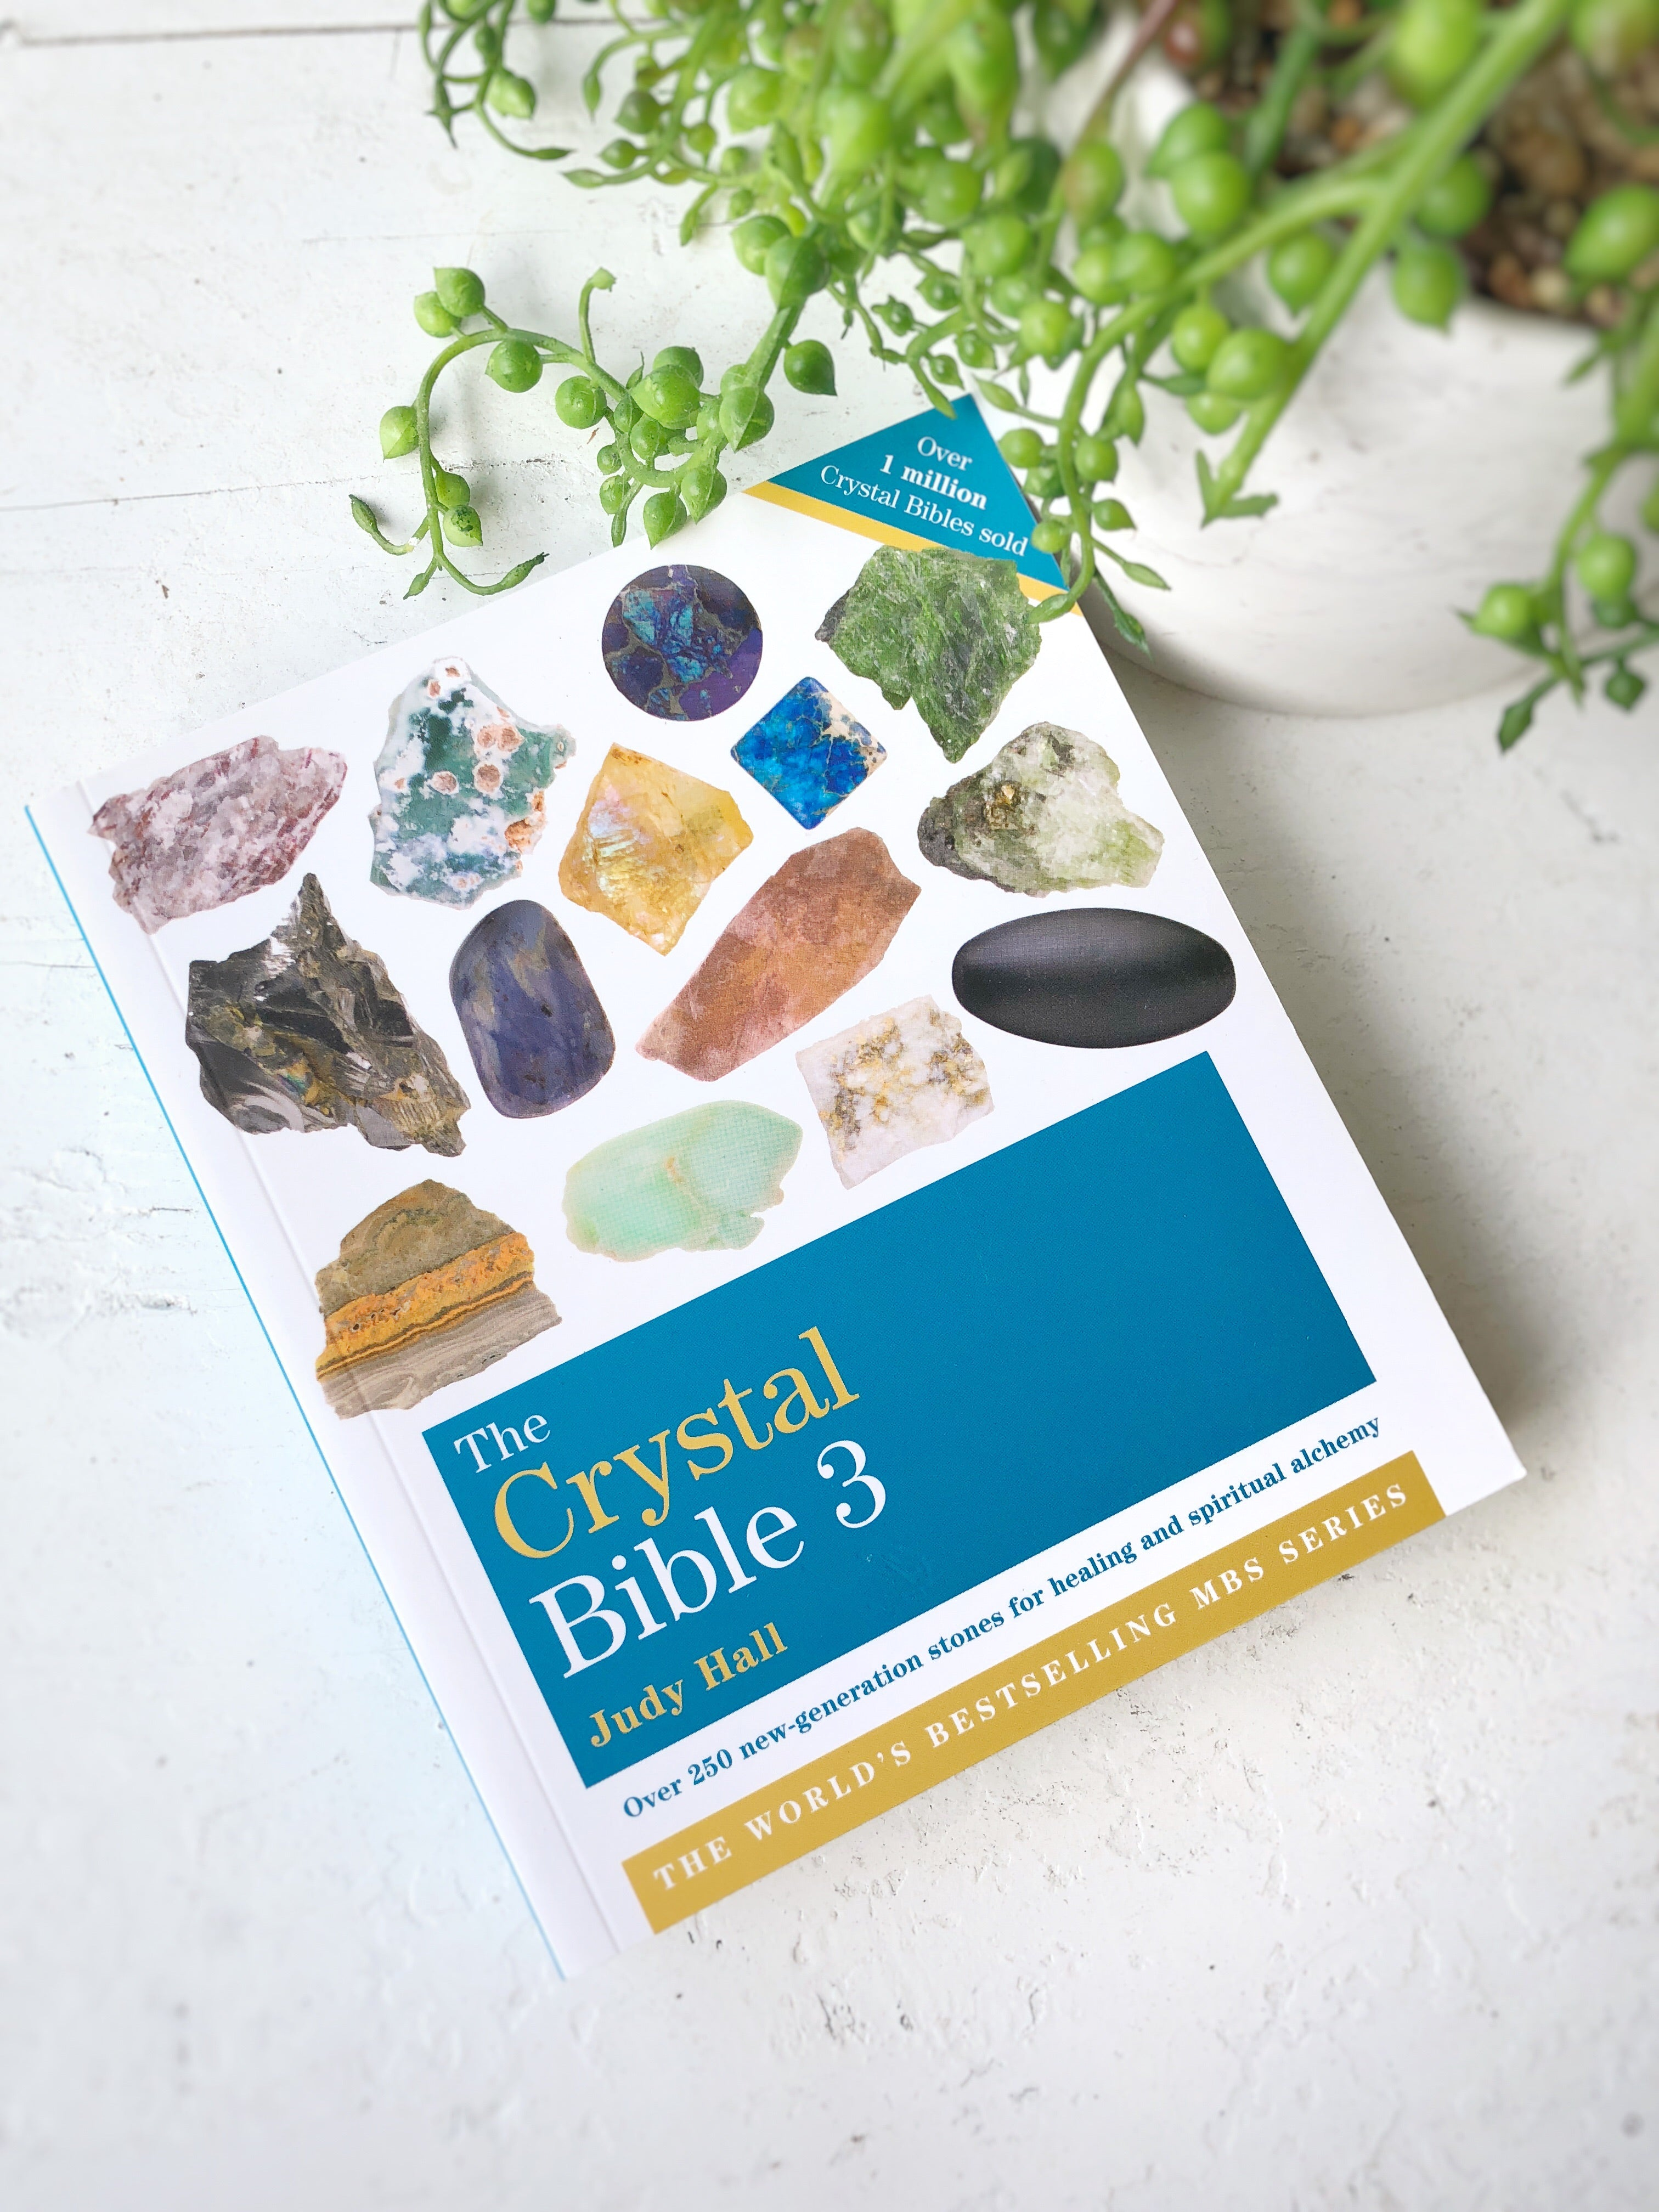 The Crystal bible volume 3- by Judy Hall